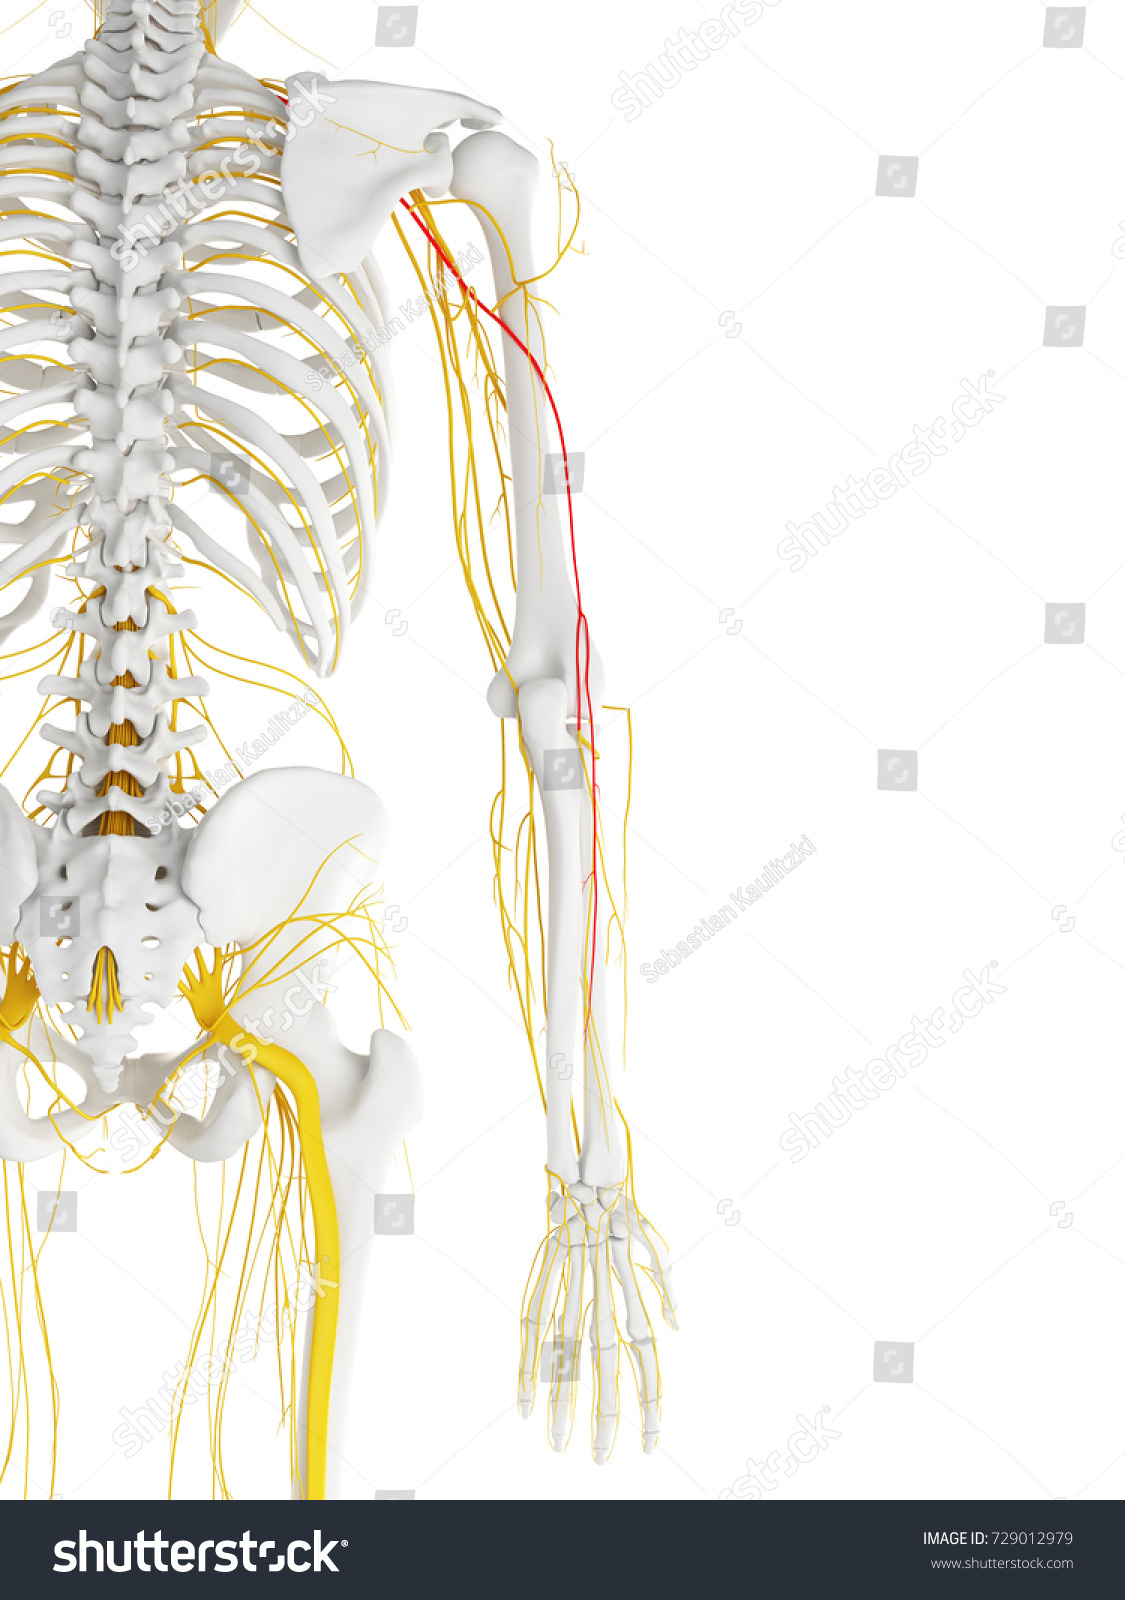 Royalty Free Stock Illustration Of 3 D Rendered Medically Accurate